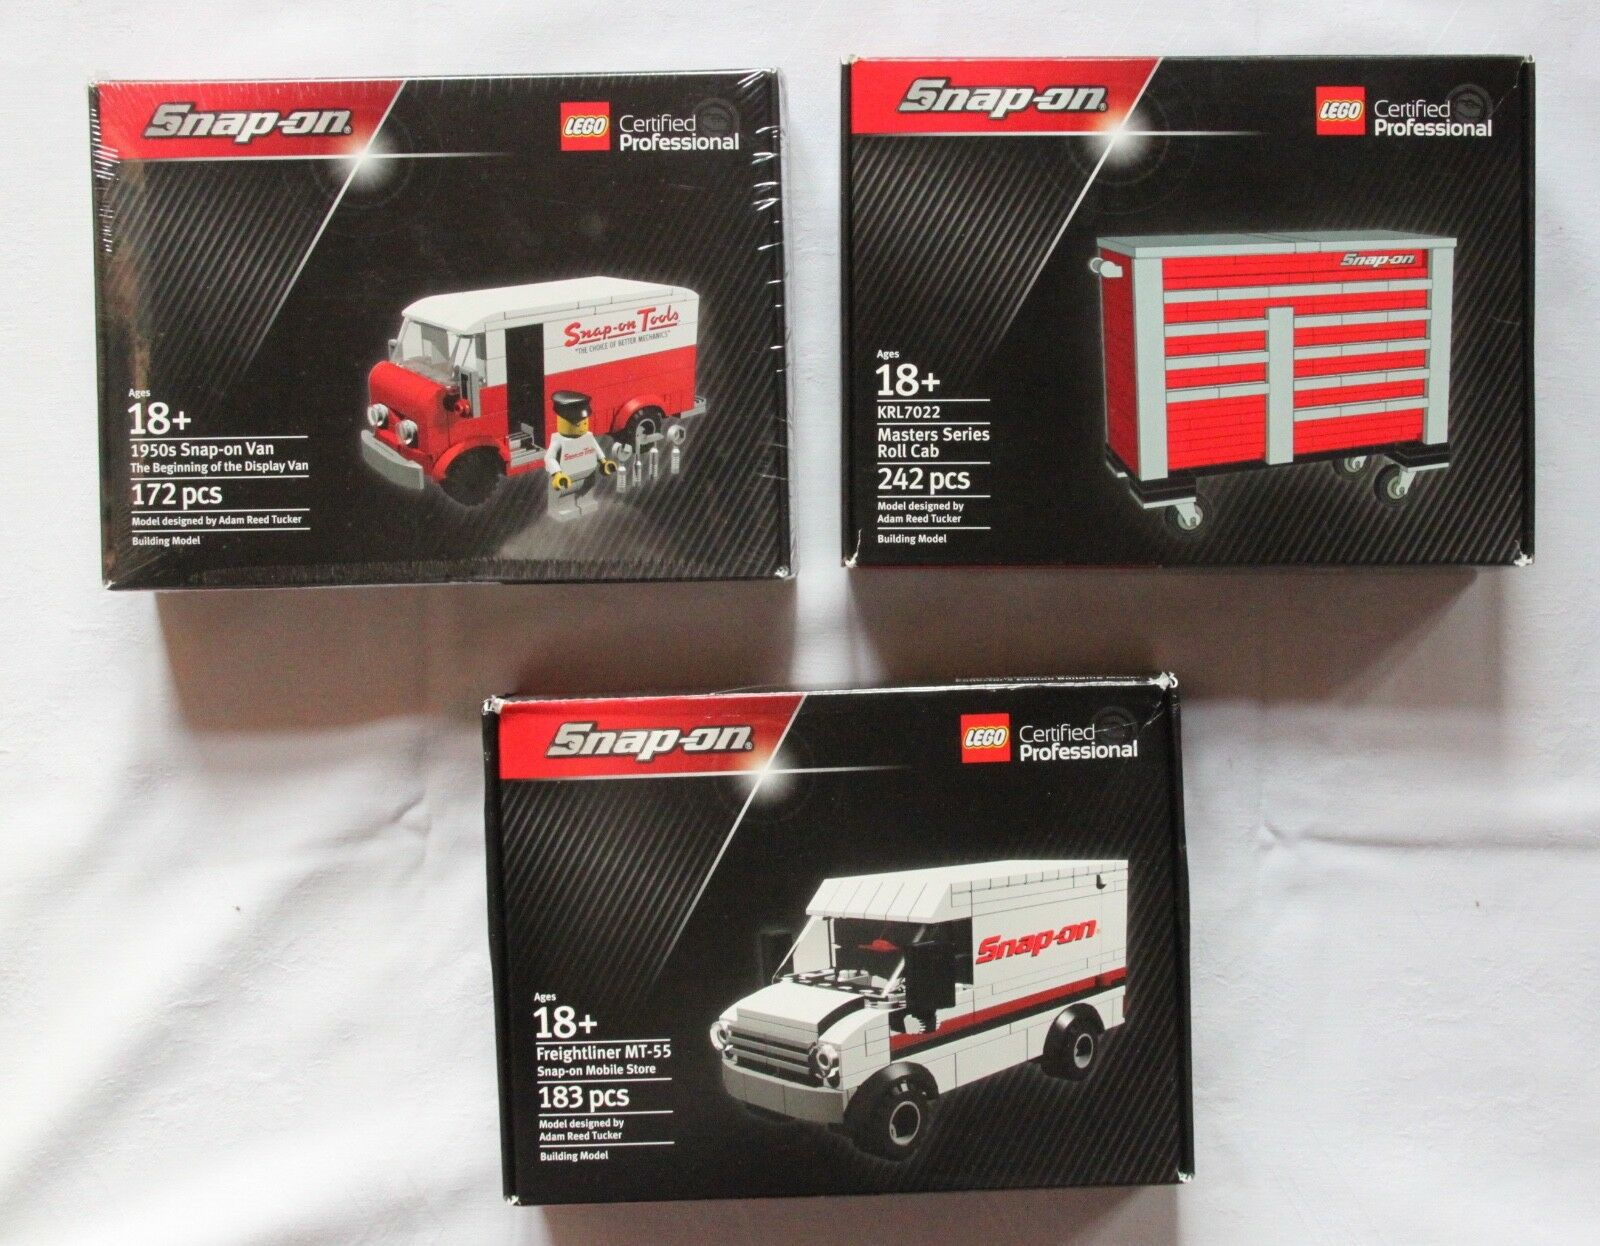 Lego Snap On 3 ateur Certified Professional Limited Edition